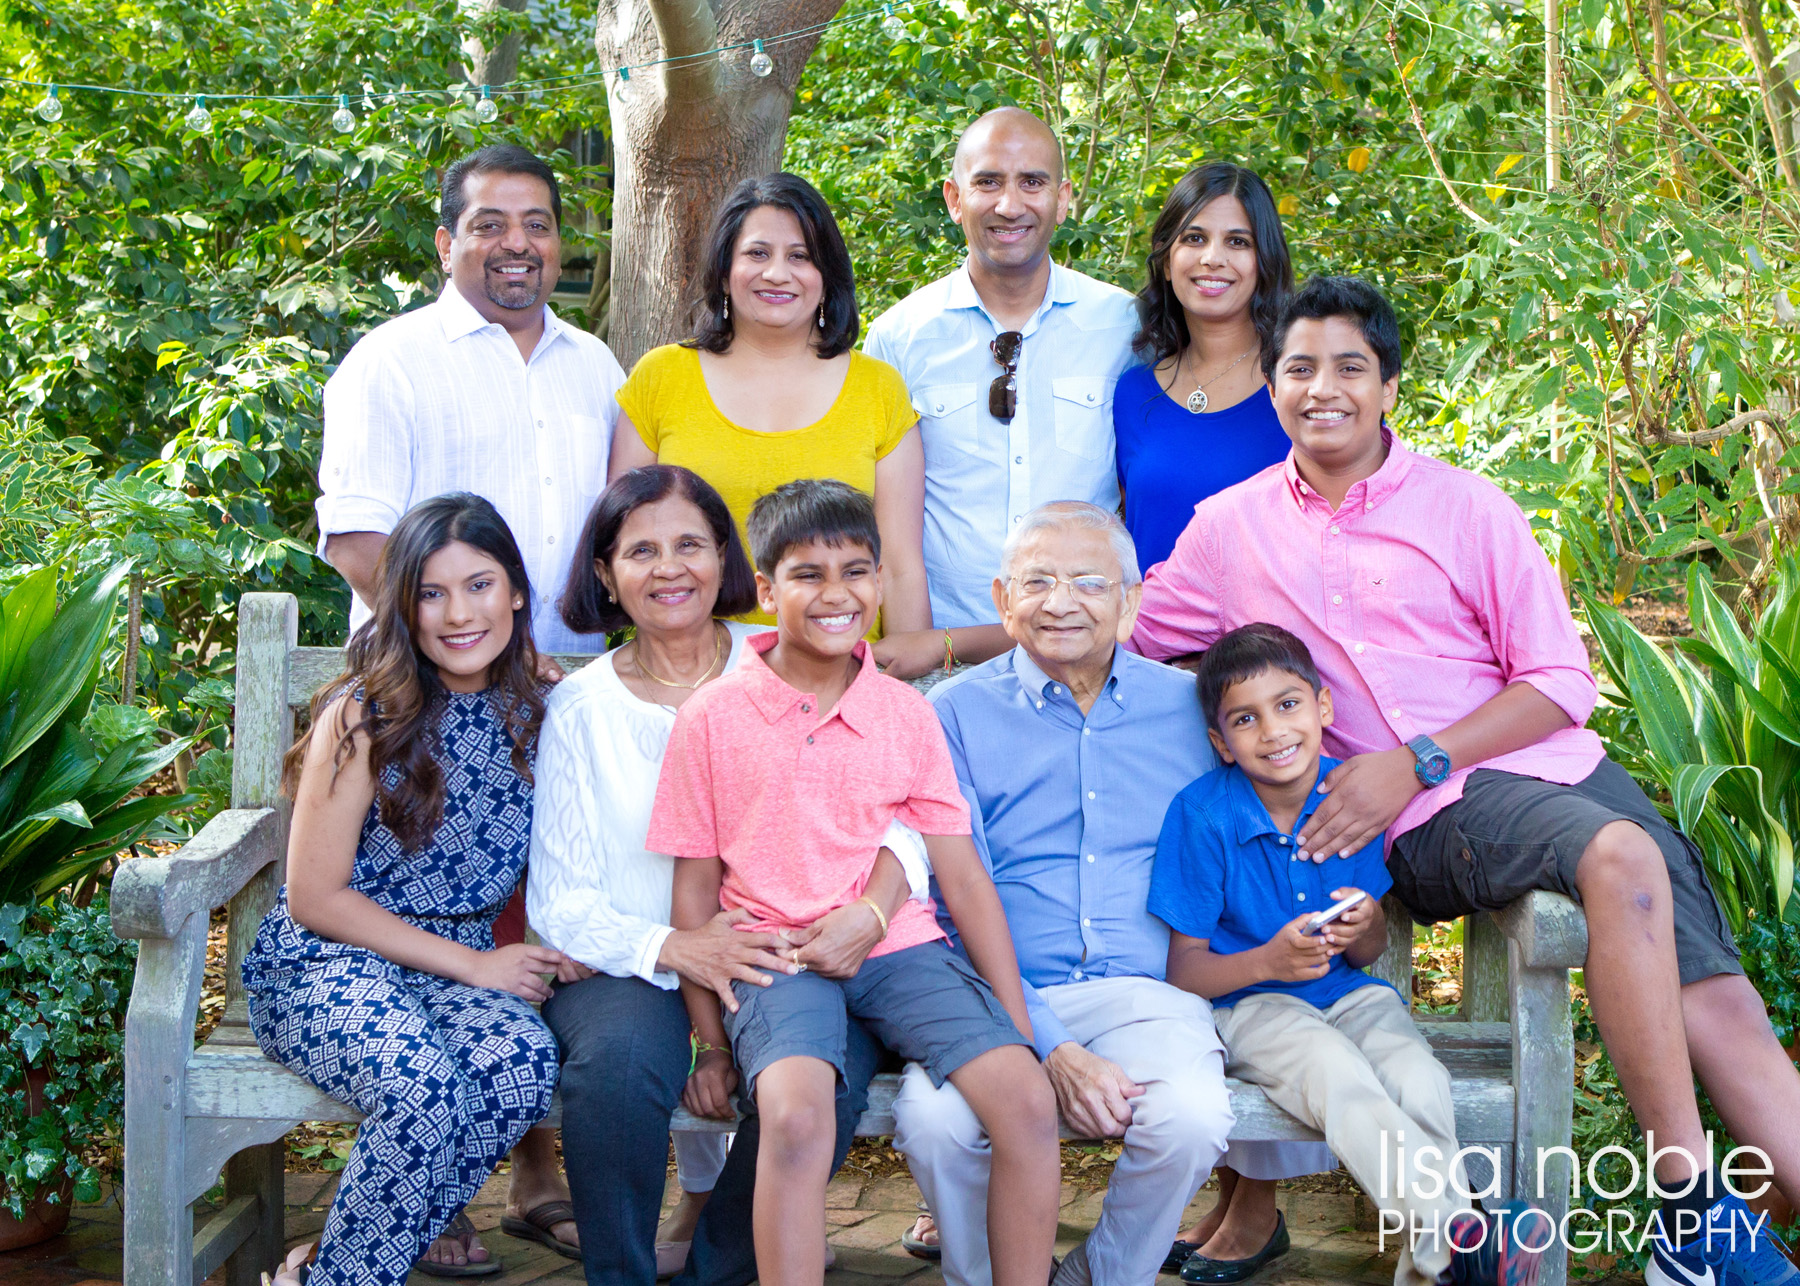 Family Photography Bay Area California